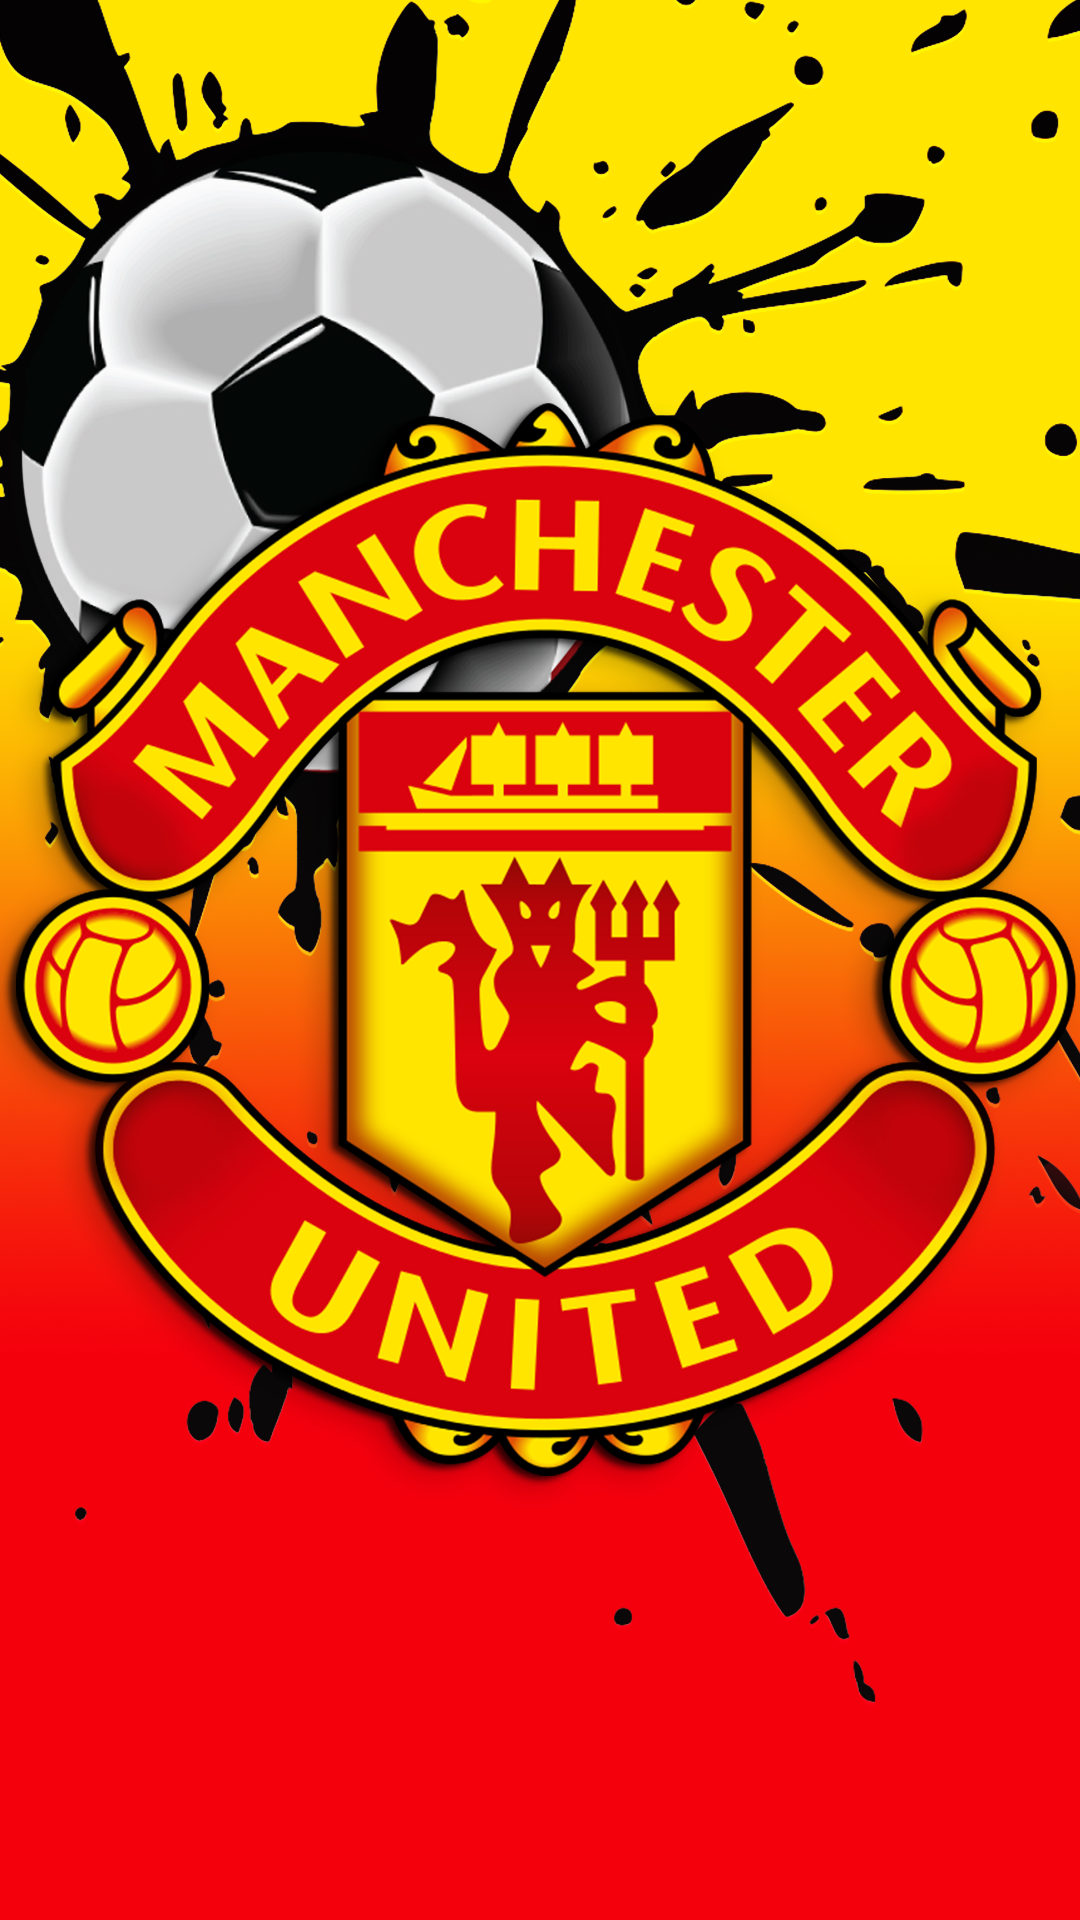 Free Hd Manchester United Fc Iphone Wallpaper For Download 0171